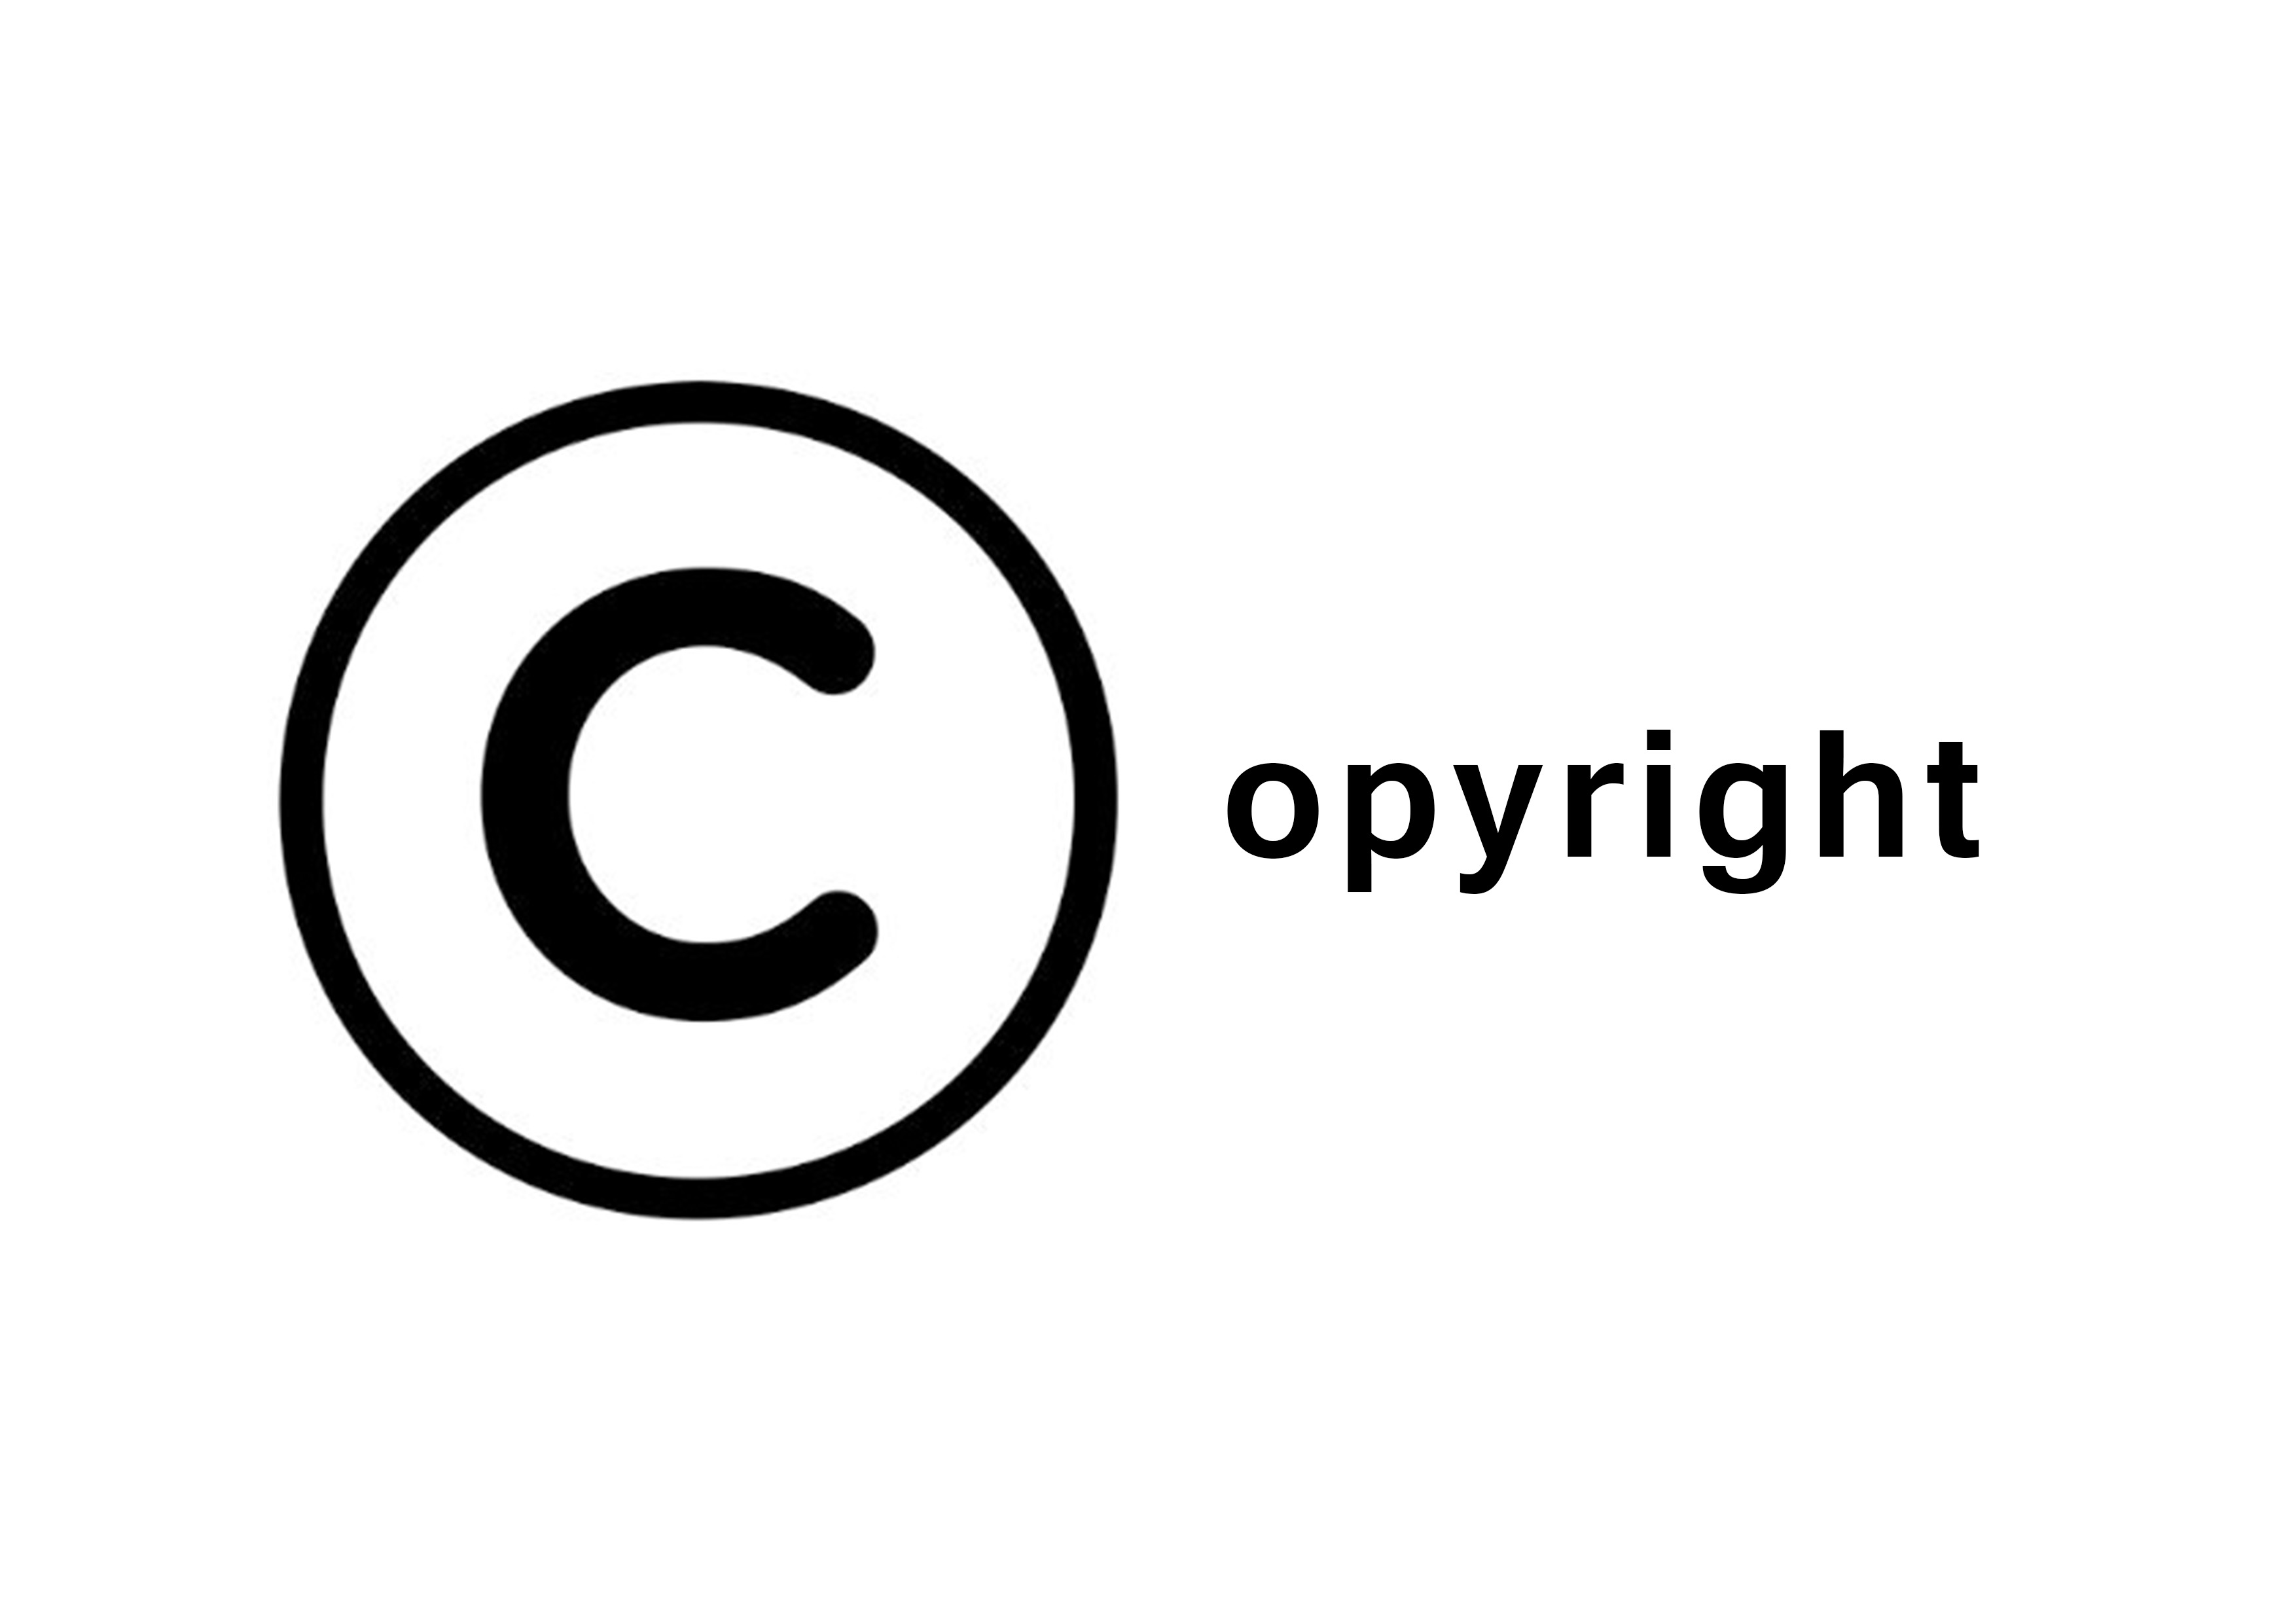 How Does Copyright Work on Social Media?